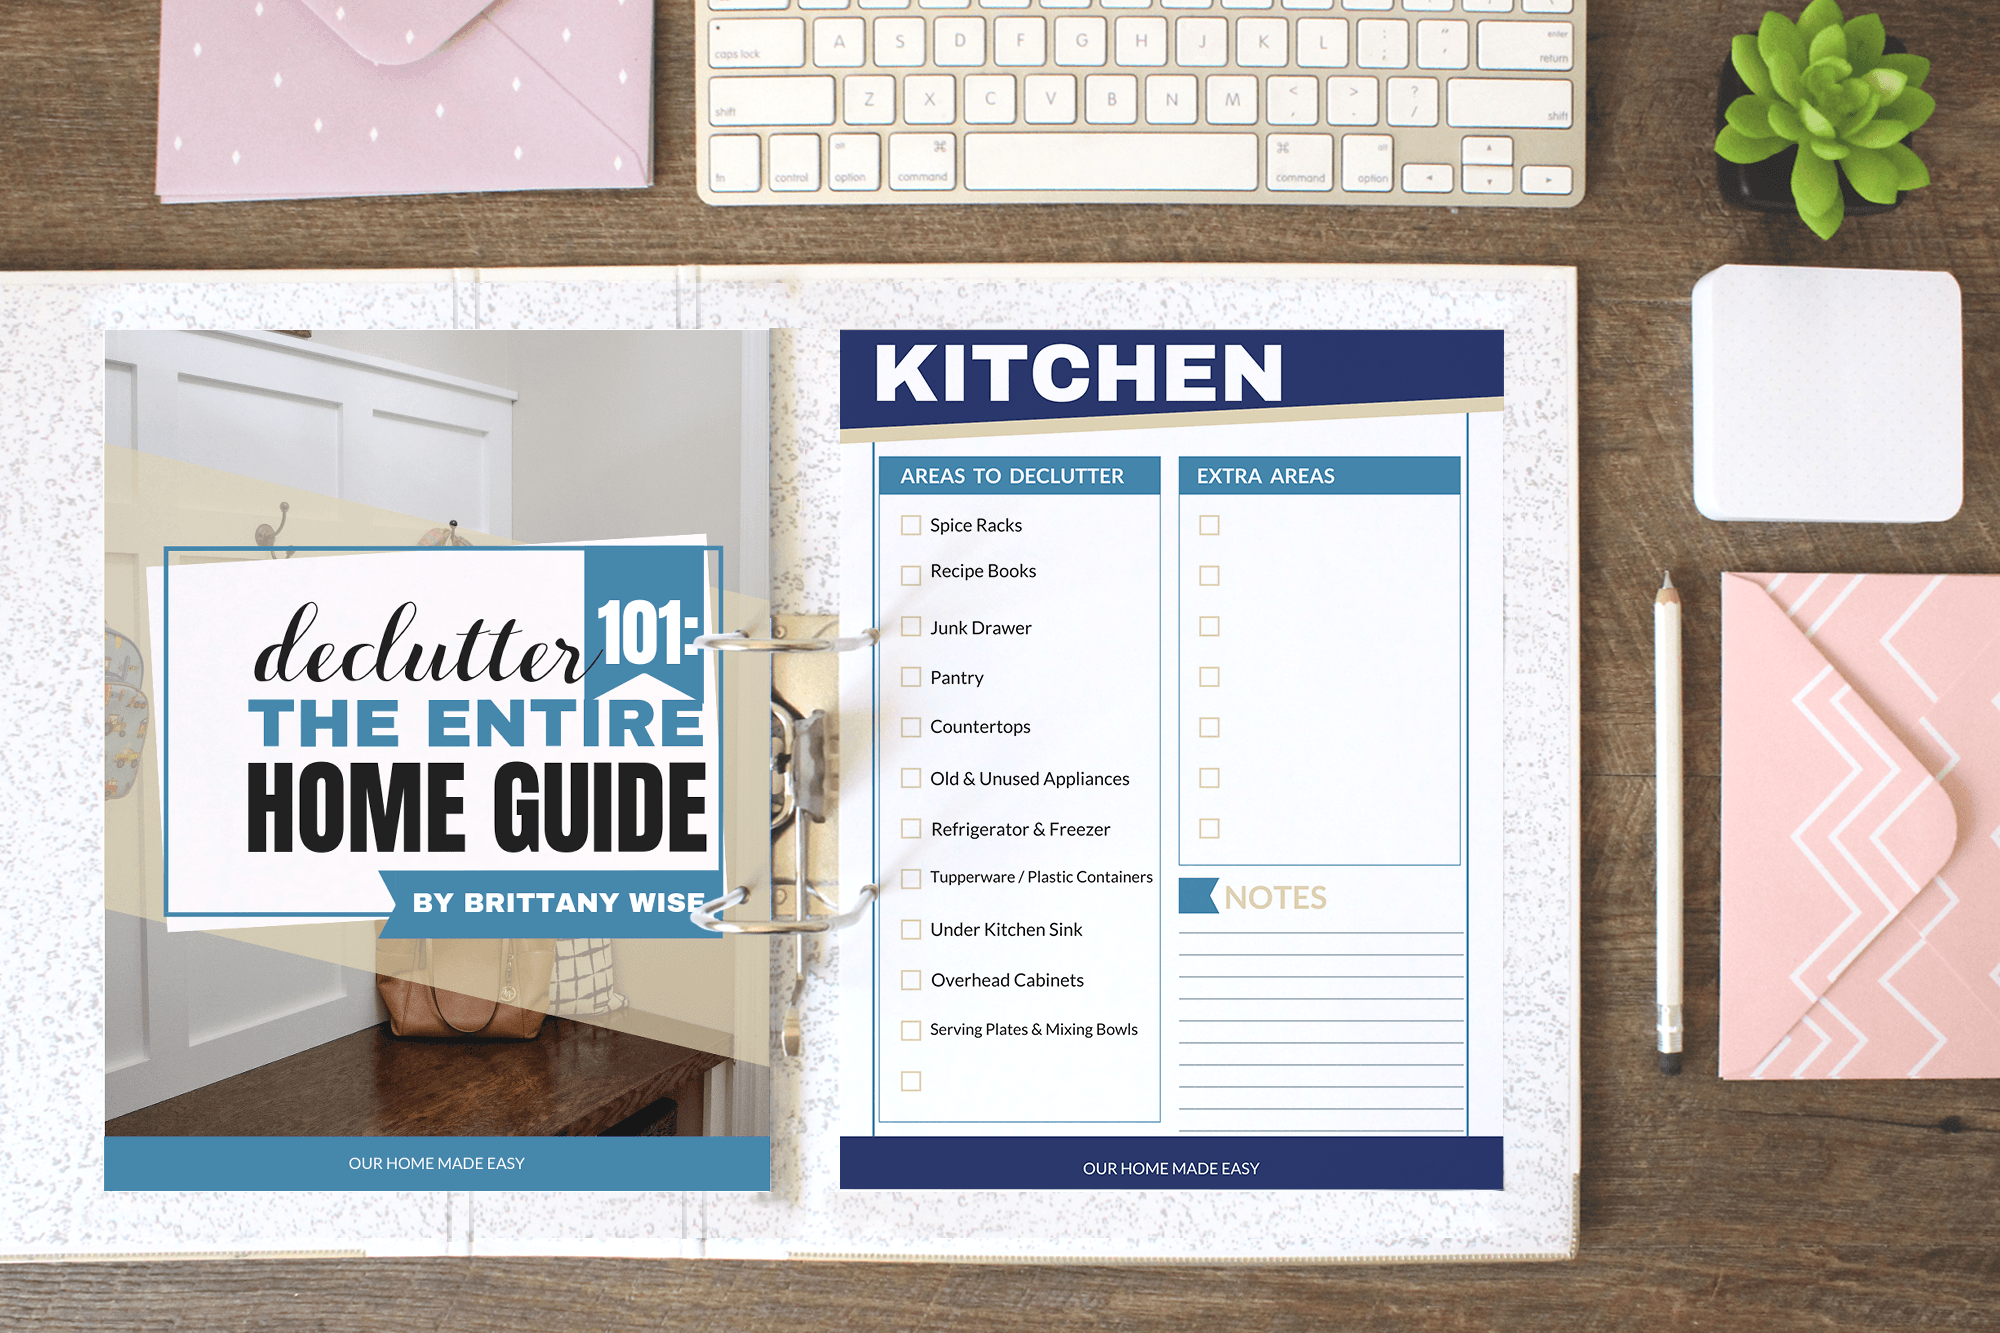 Our Declutter The Entire Home Guide is a handy tool to have when you're trying to get your home ready to sell